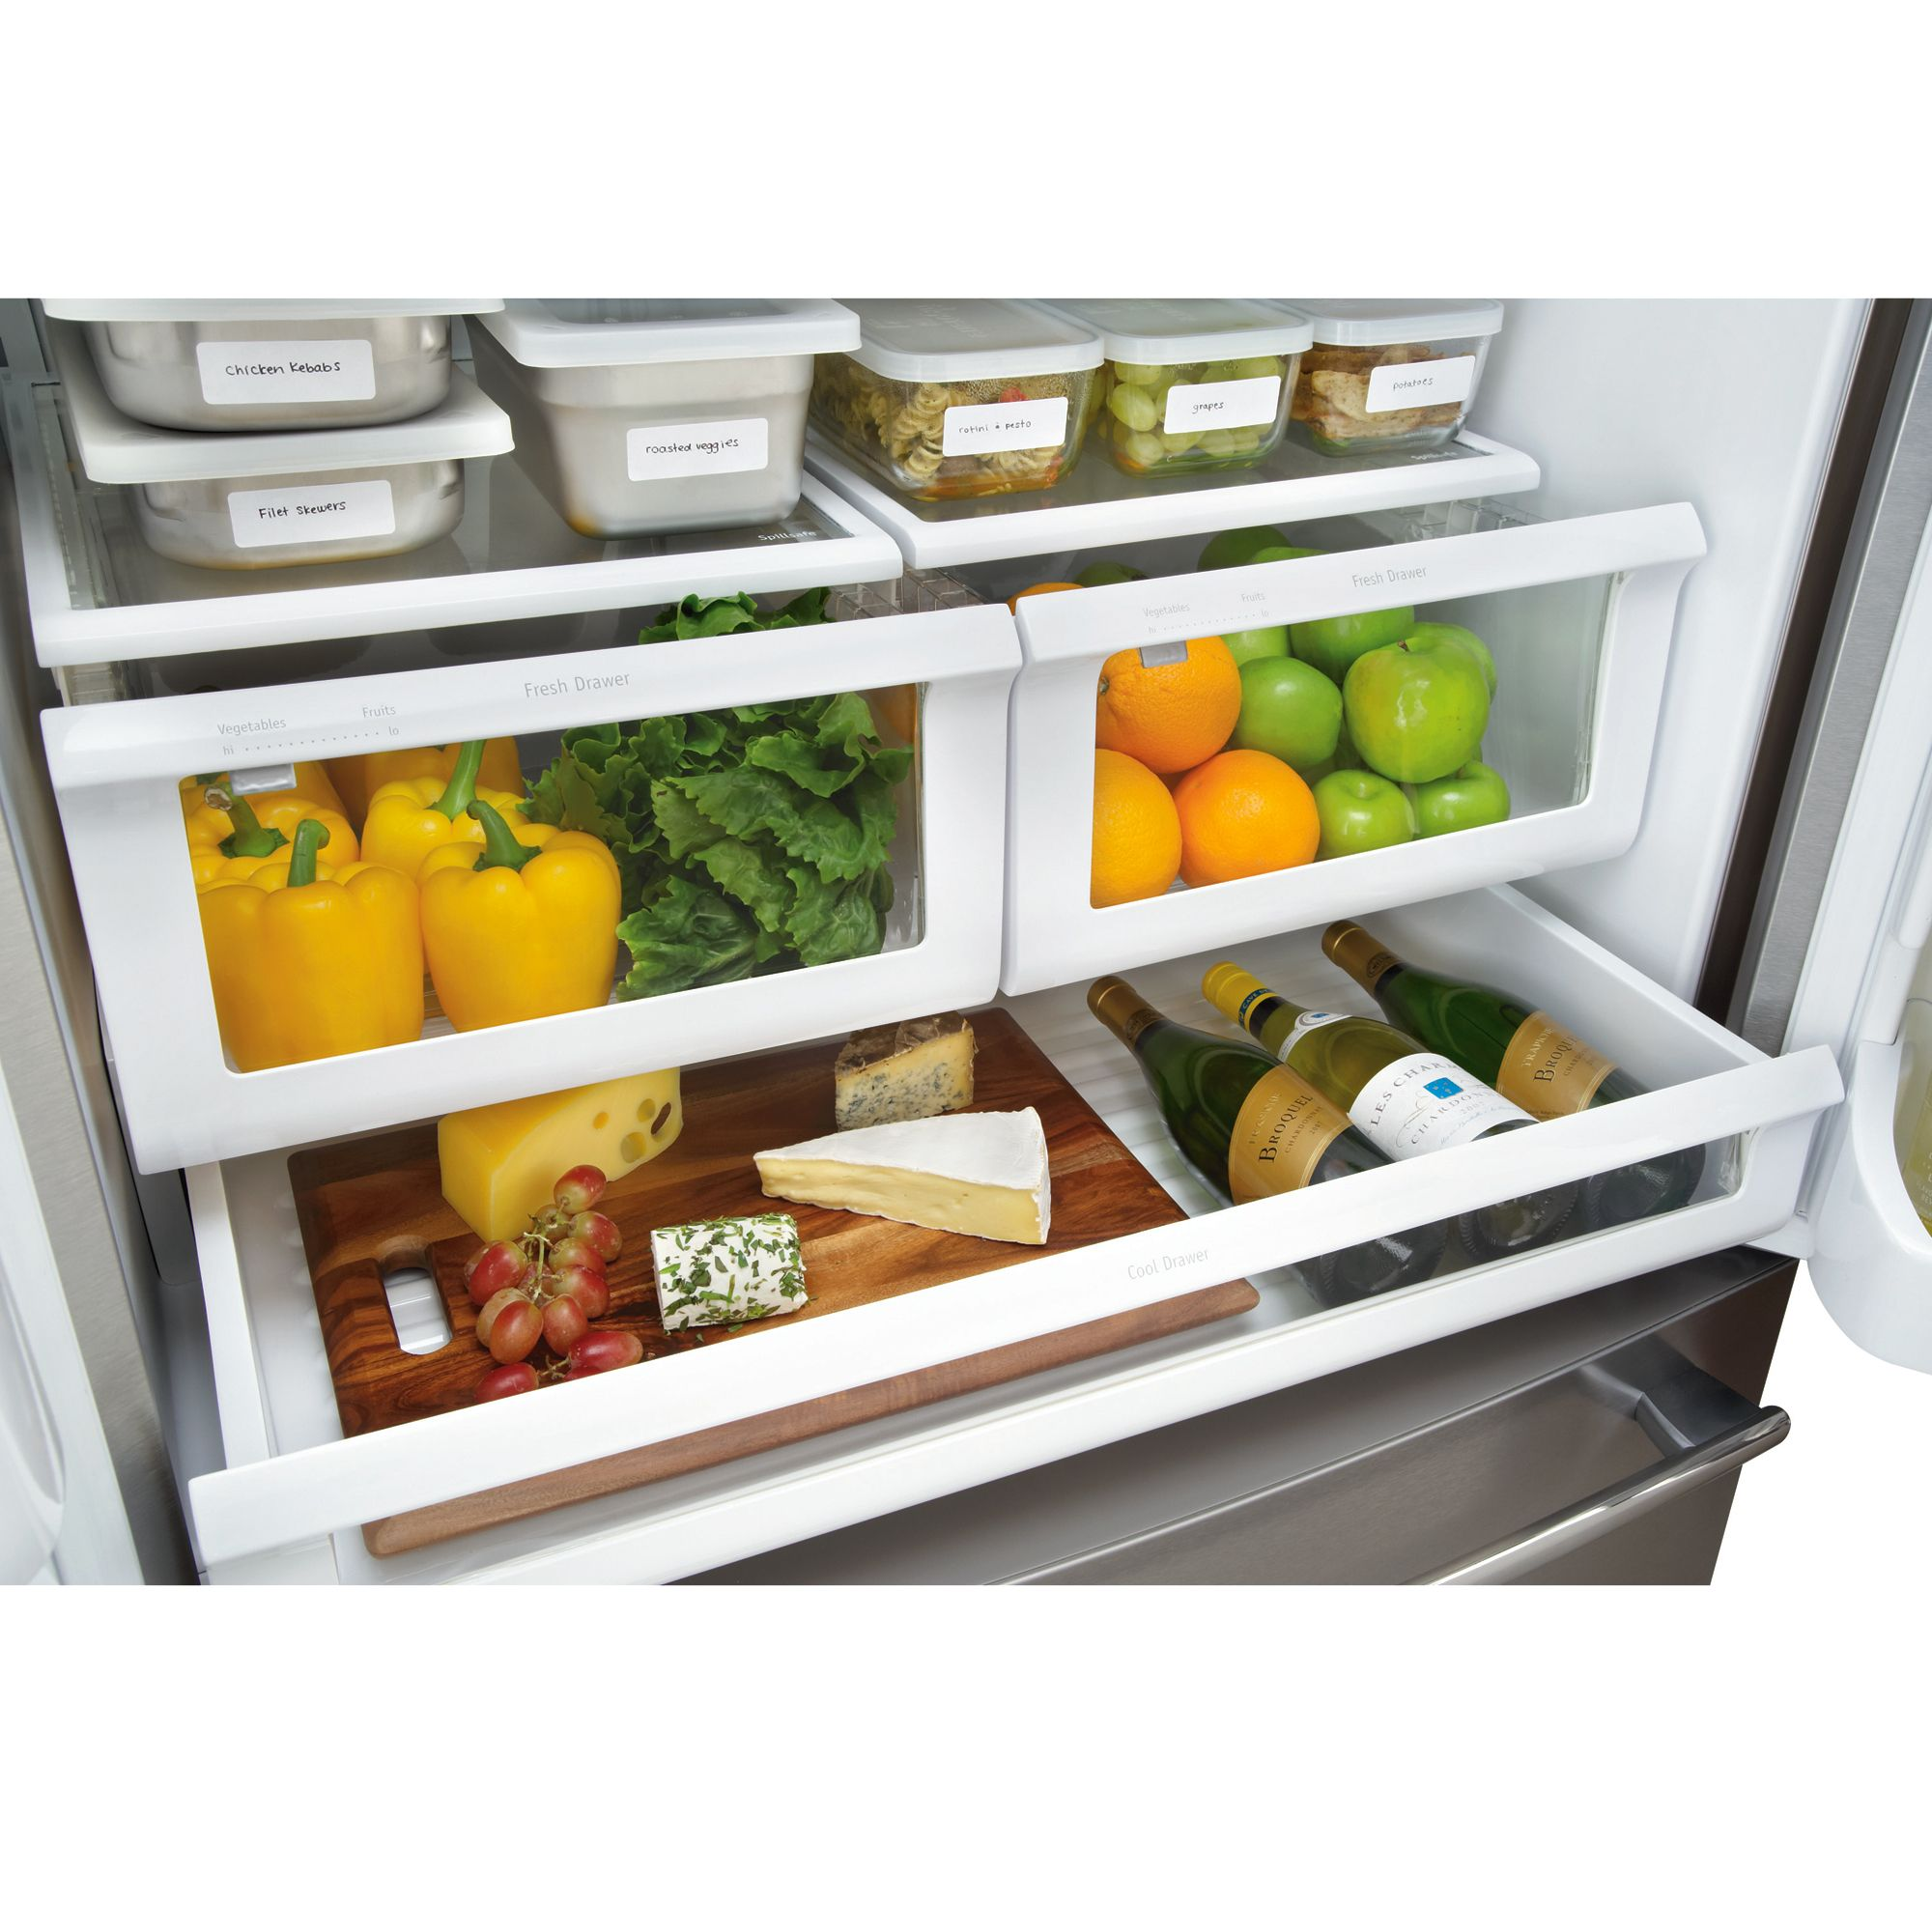 Frigidaire 27.8 cu. ft. French-Door Bottom-Freezer Refrigerator (FPHB2899)